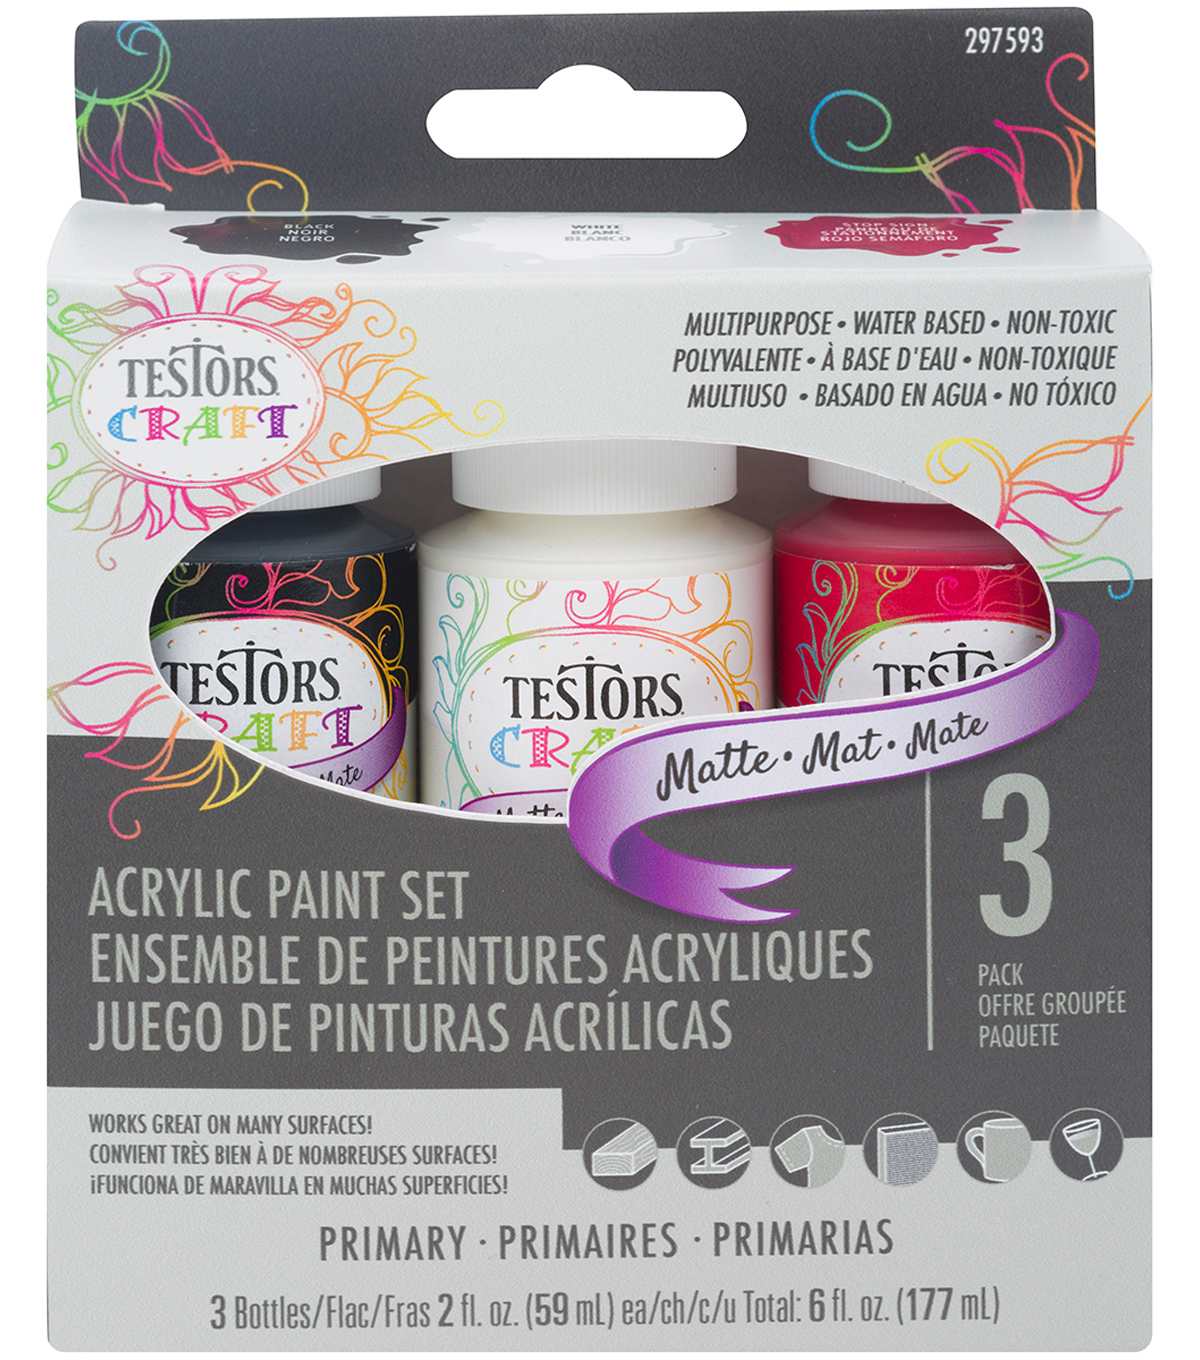 Testors 3 pk Craft Acrylic Paint Bottles